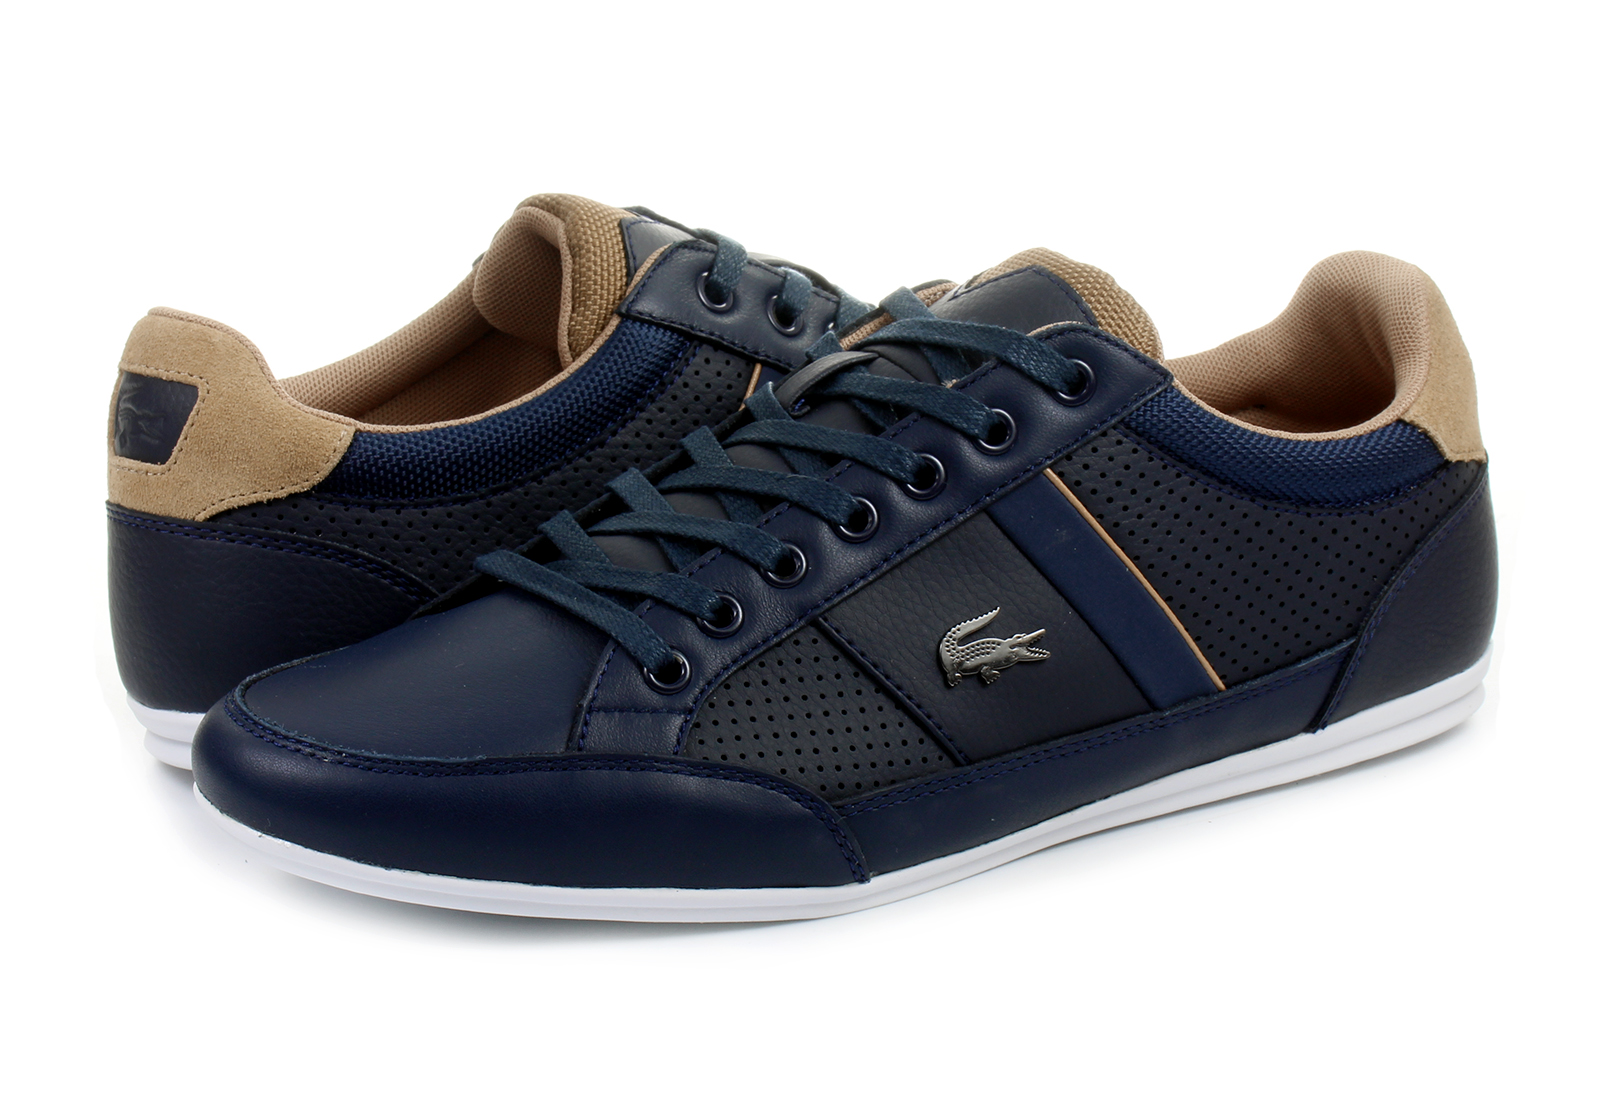 Blue And Gold Lacoste Shoes Women